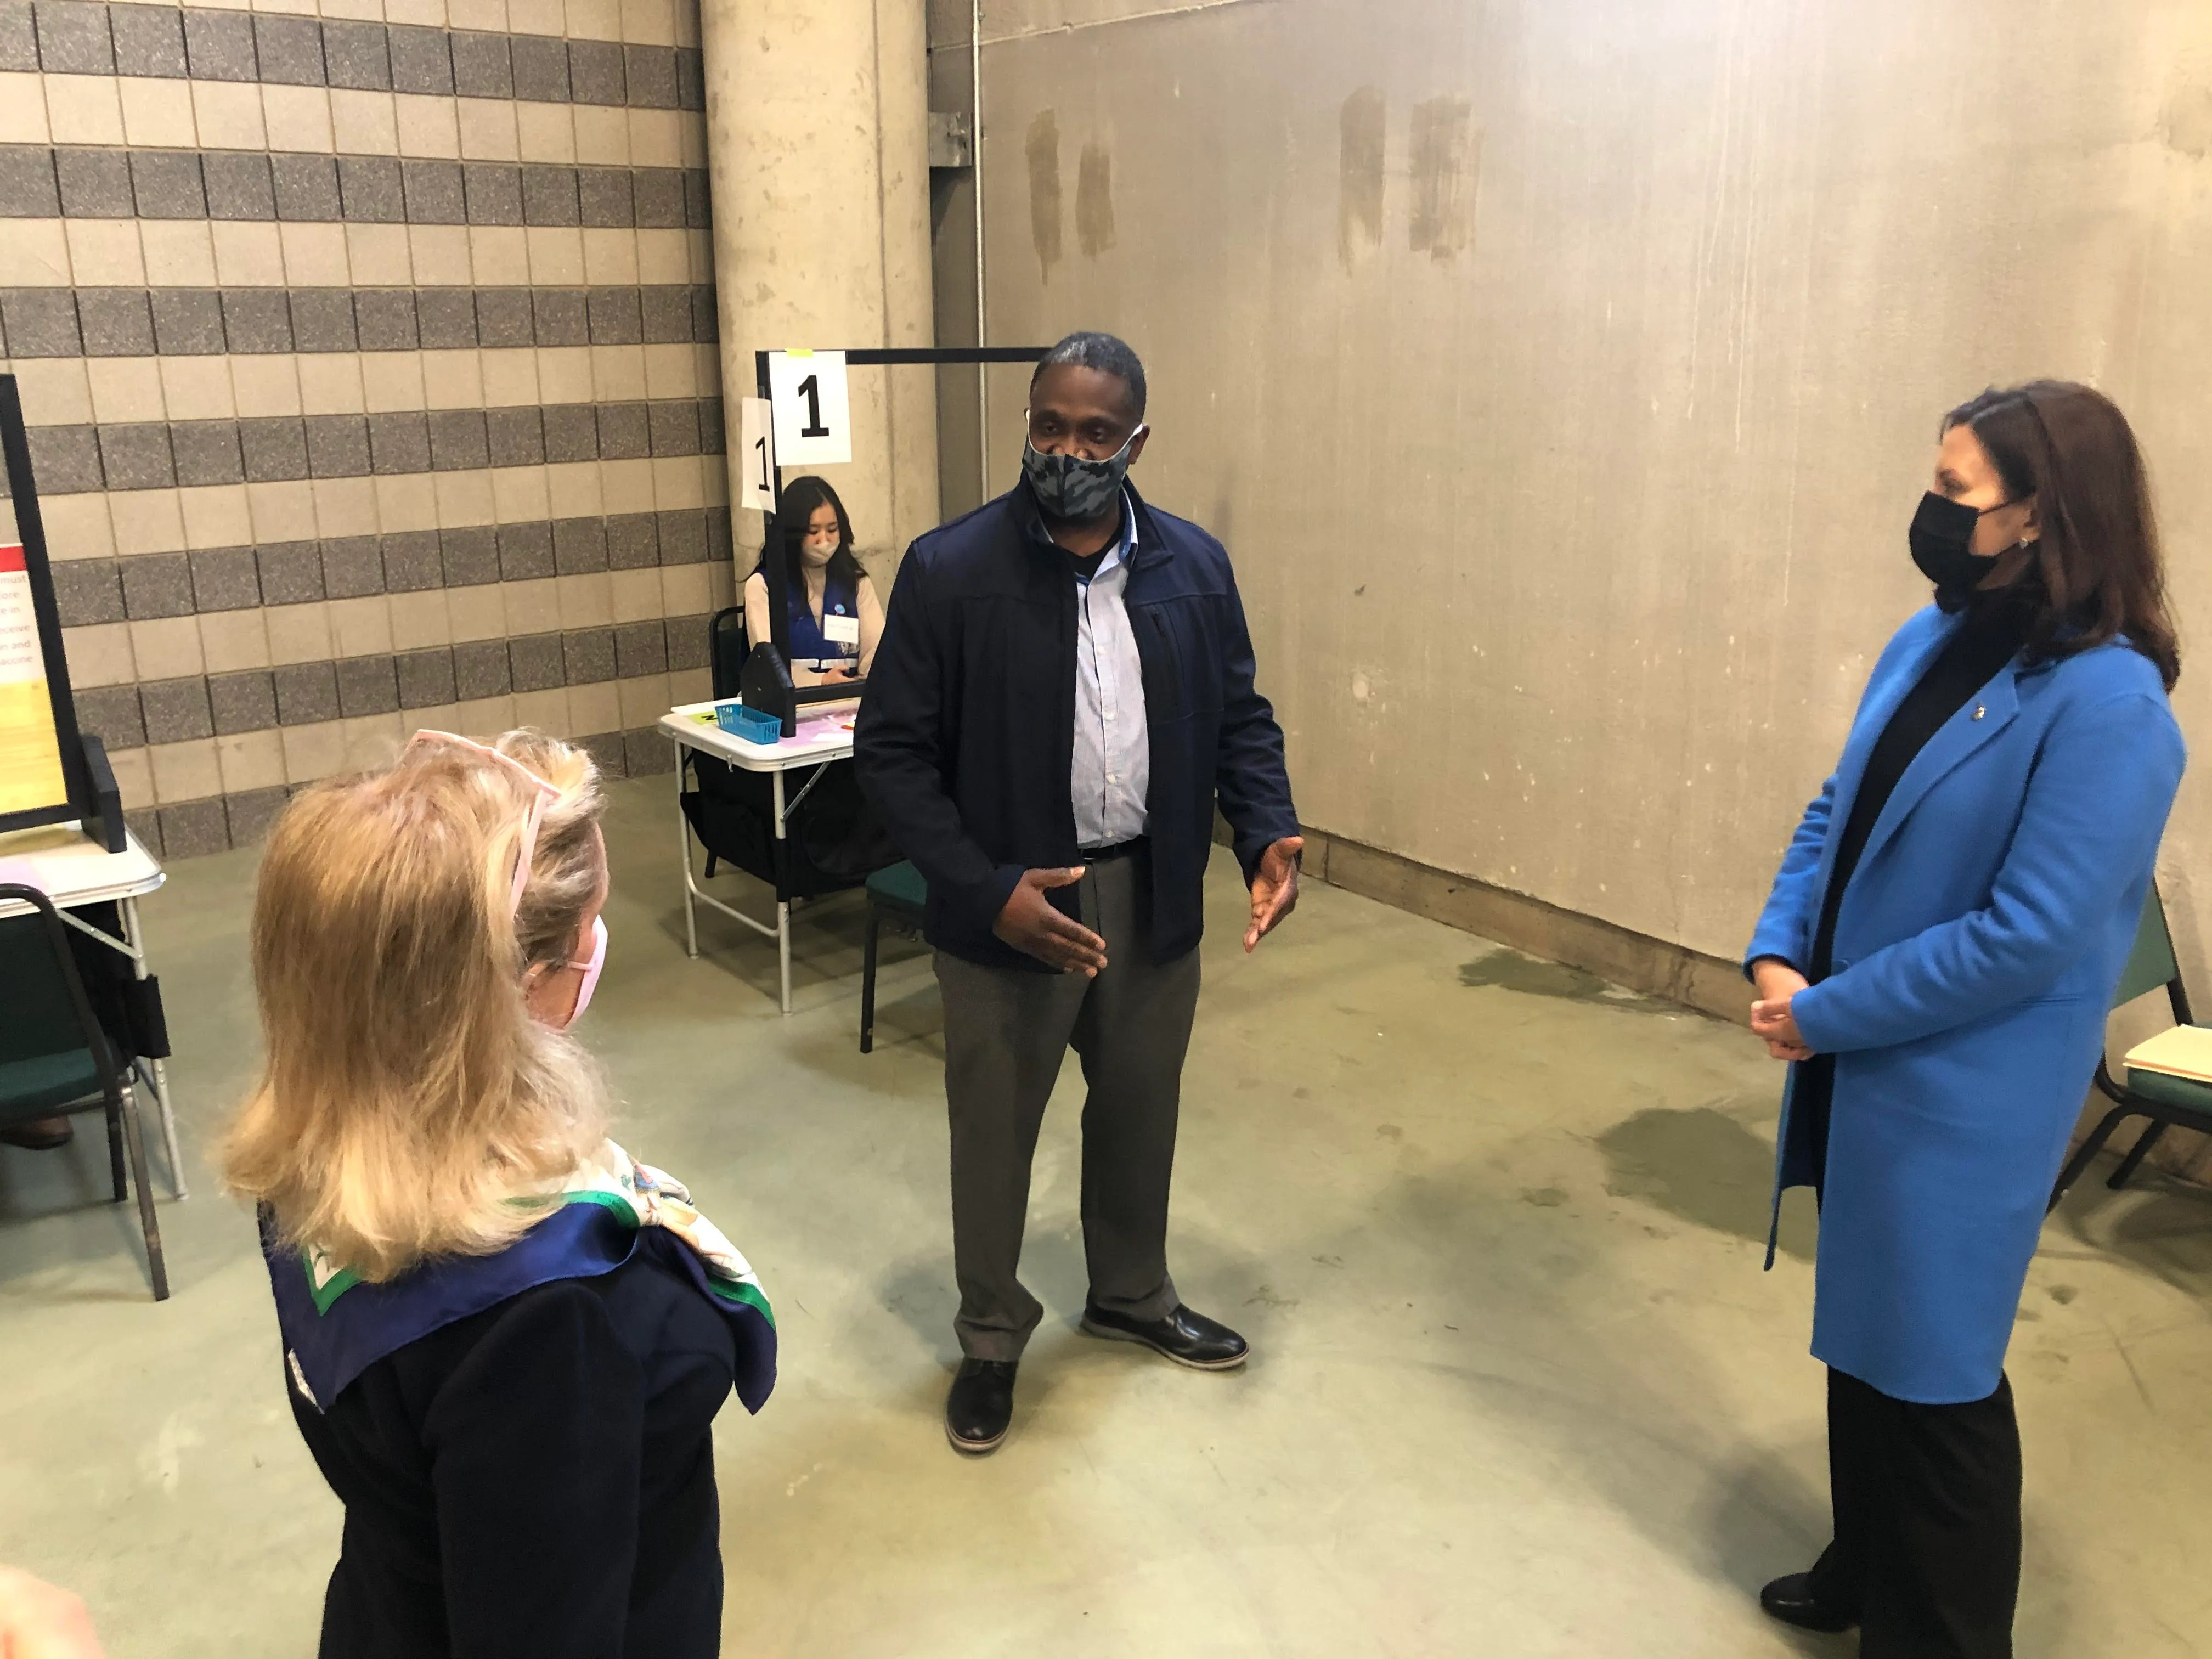 Kevin Lawson, 51 from Ypsilanti, chats with Representative Debbie Dingell and Governor Gretchen Whitmer before getting vaccinated against COVID-19 at the Eastern Michigan University convocation center on April 12, 2021.